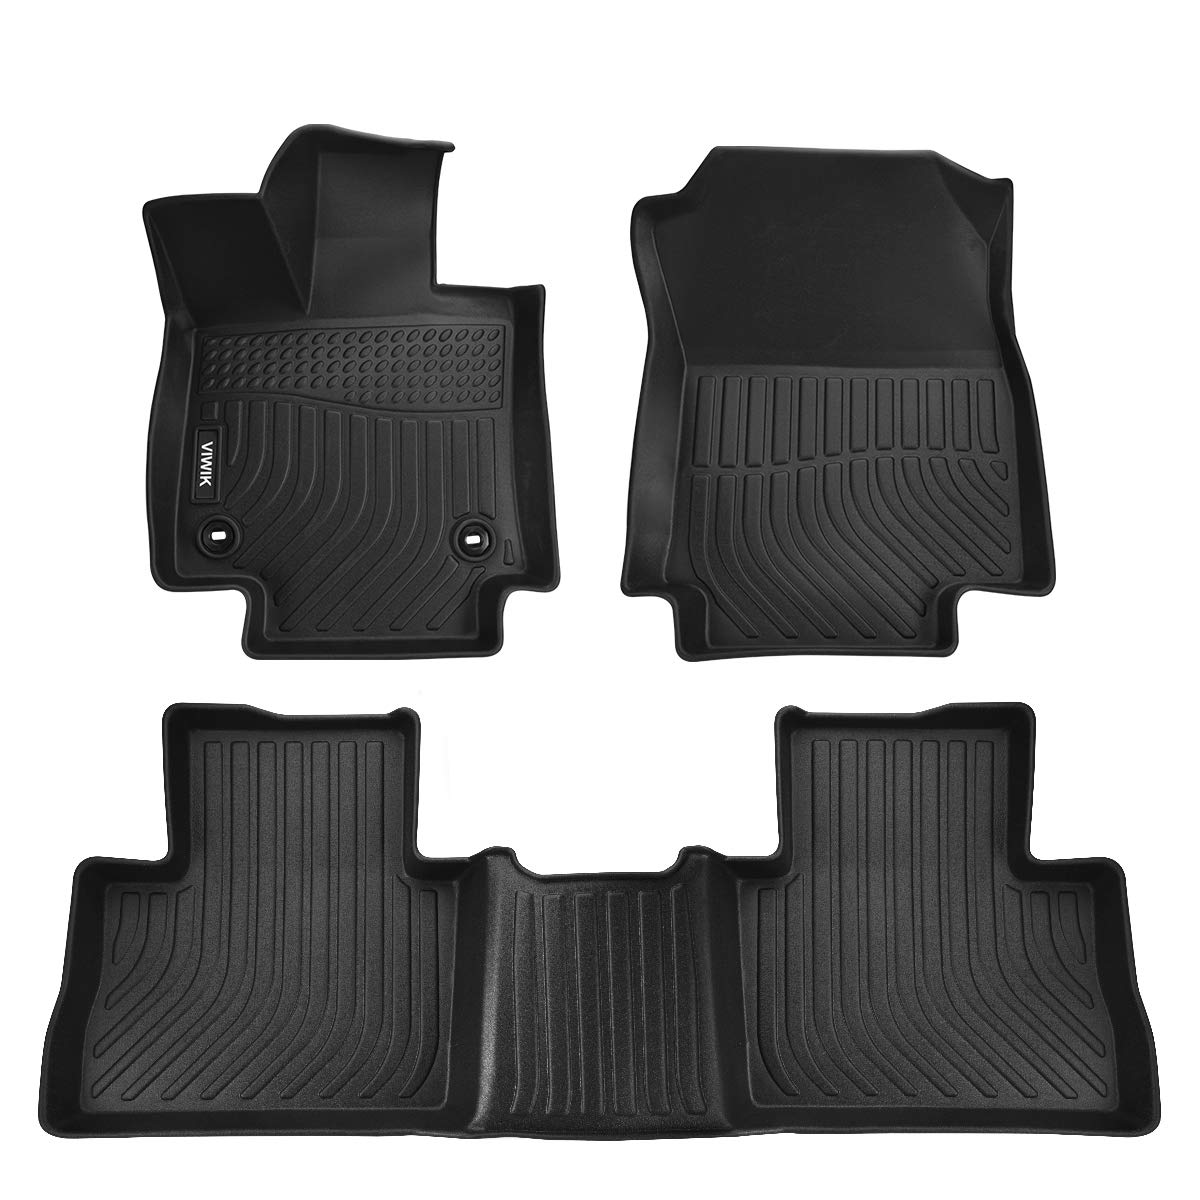 VIWIK Floor Mats for 2019-2020 Toyota RAV4, TPE Front and Rear Floor Liner Set for Toyota RAV4, Tough, Durable and Eco-Friendly, 100% Safe